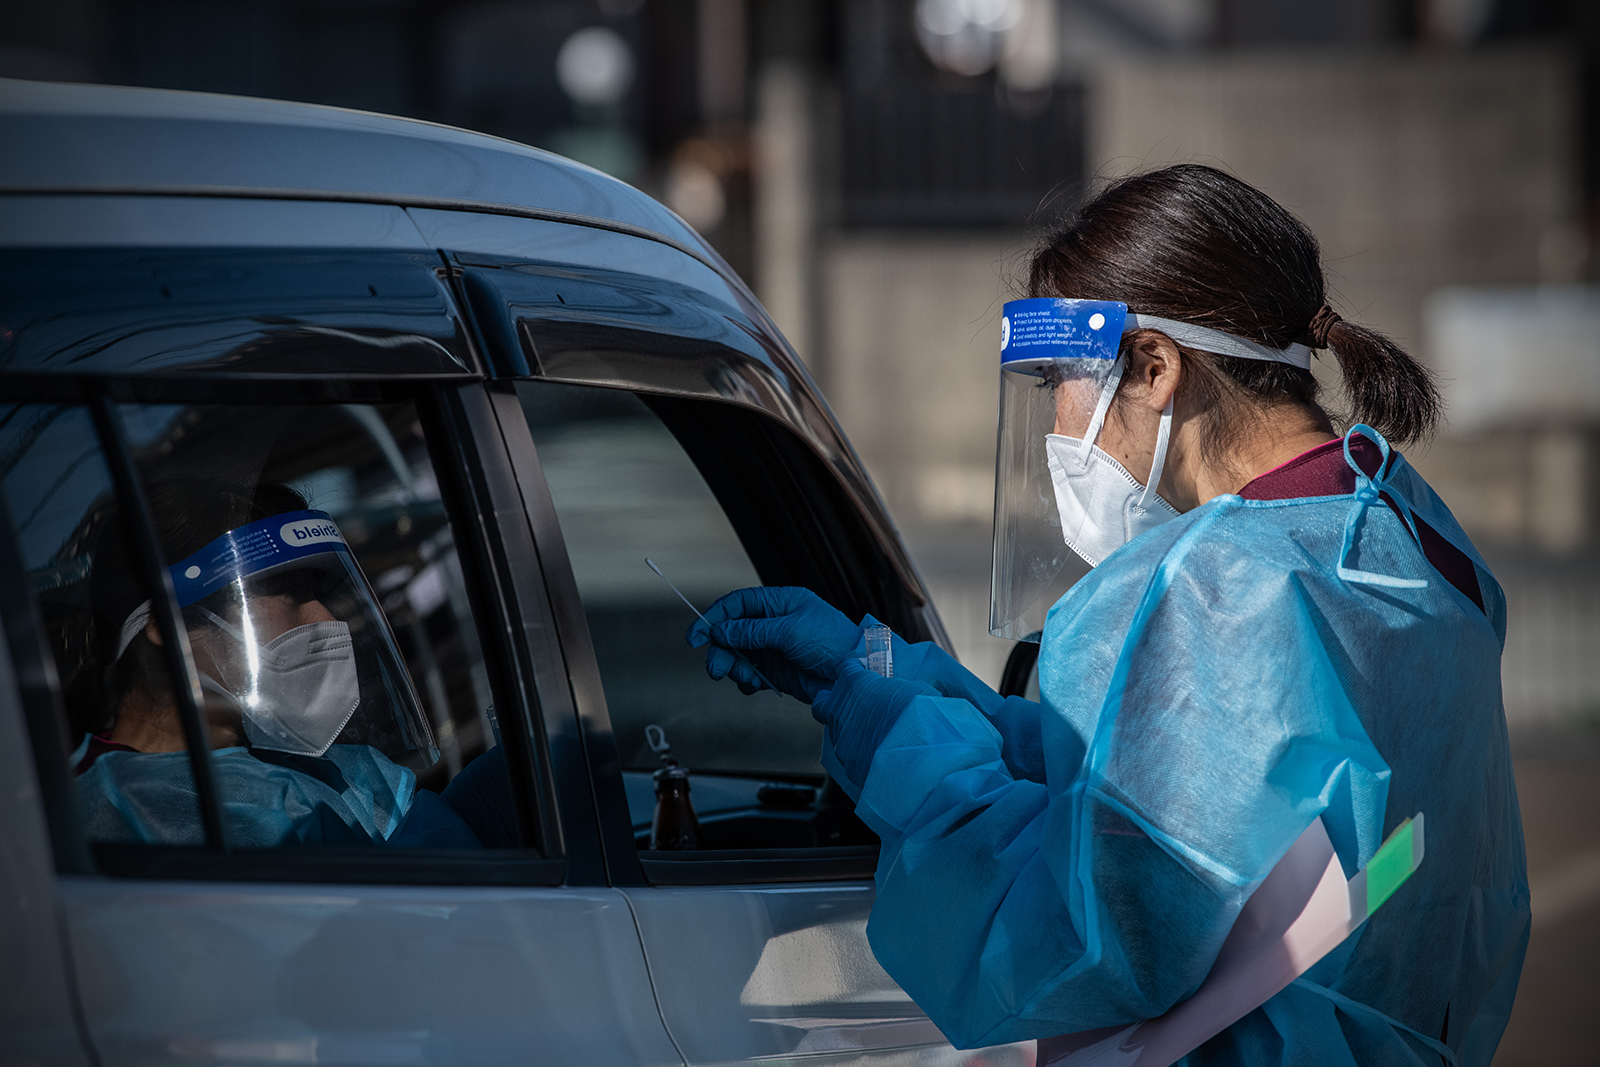 A nurse collects a nasal swab sample from a car driver at a Covid-19 PCR testing center at Fujimino Emergency Hospital in Miyoshi-machi, Japan, on December 18.